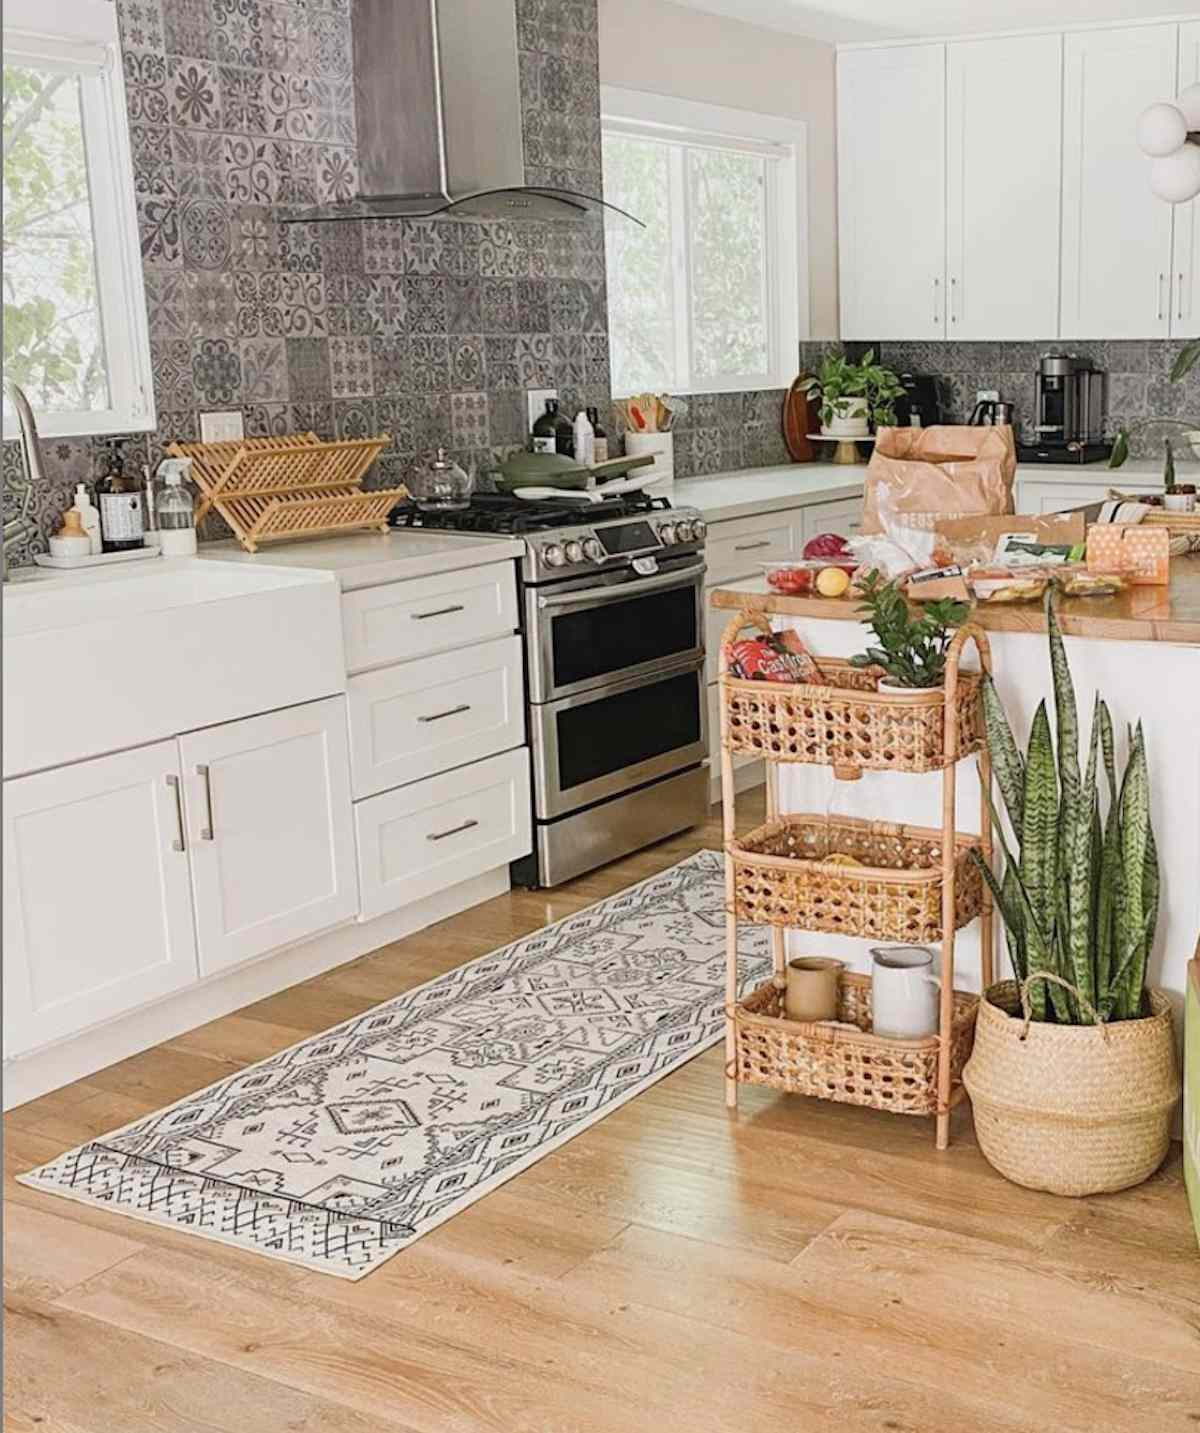 set of wicker baskets holding various kitchen items including cookbooks